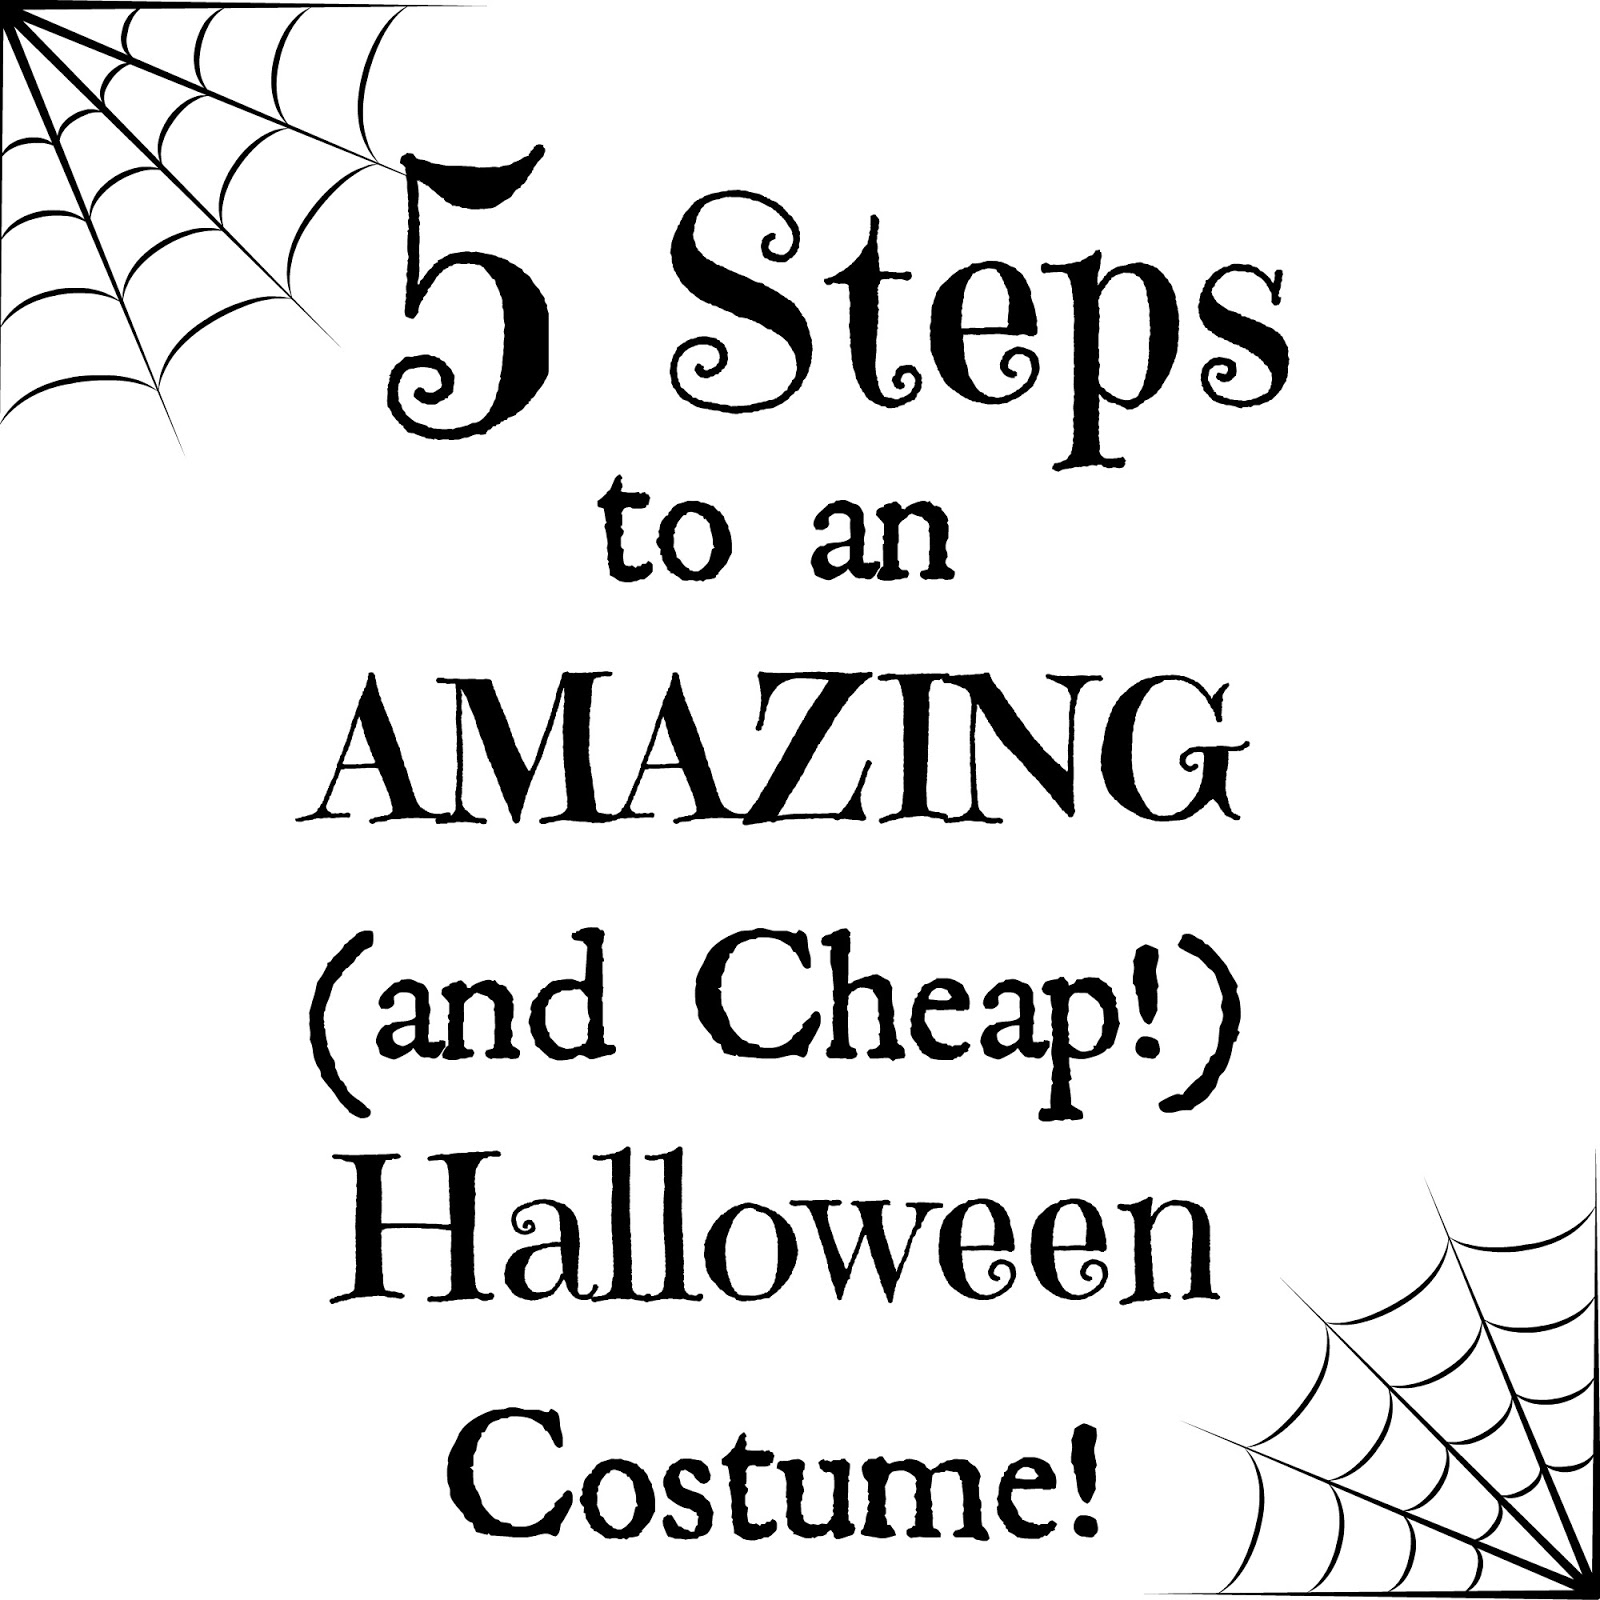 My Favorite Things 5 Steps To An Amazing Cheap Halloween Costume